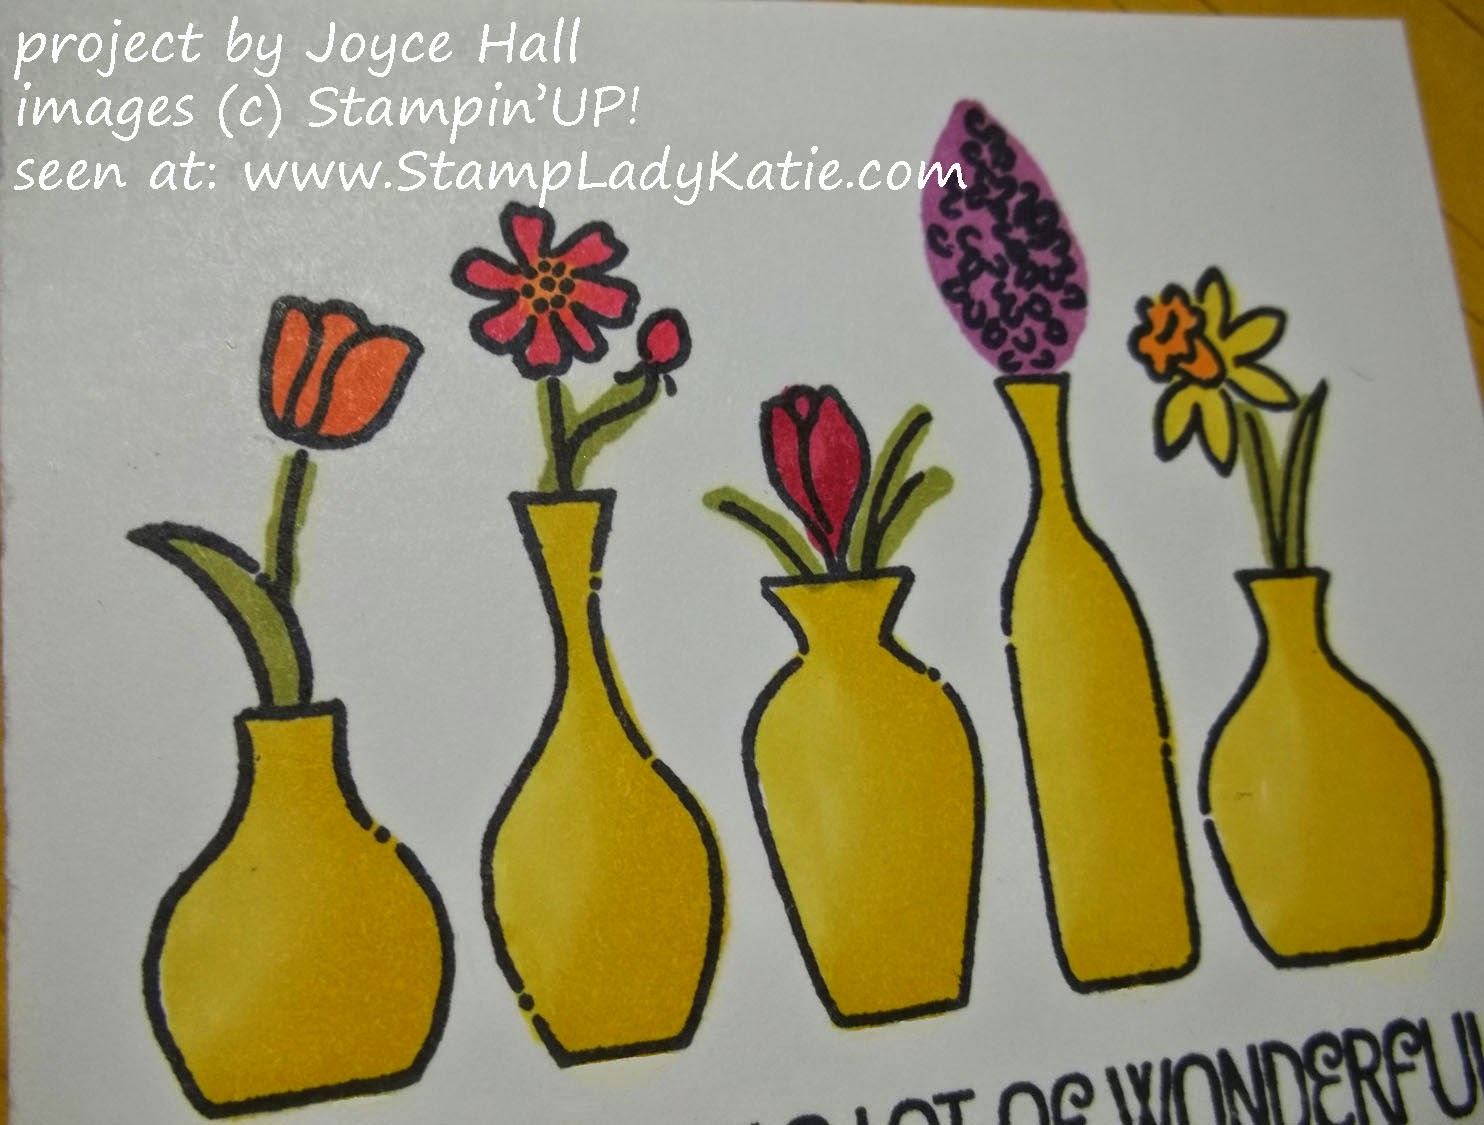 Stampin'UP!'s Vivid Vases Stamp and colored with the Blendabilities alcohol markers